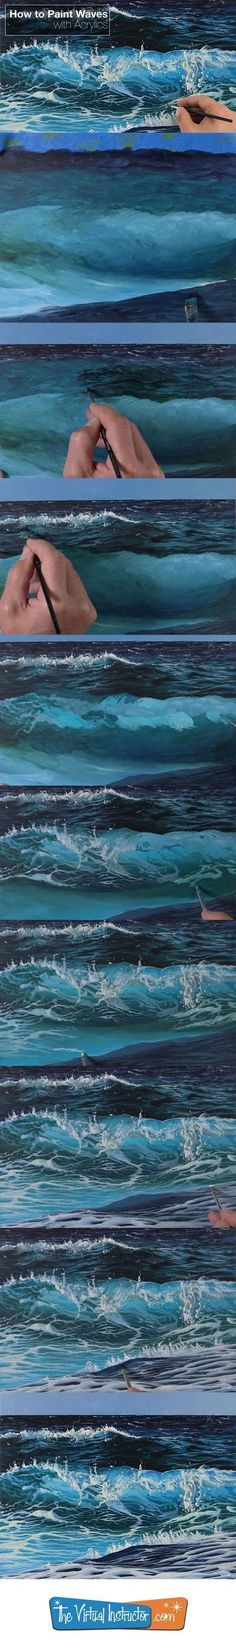 How to paint waves with acrylic paints acrylics acrylicpaint paintinglessons painting wavesHow to paint waves with acrylic paints. – meral yuksek – Join the world of pinDrop Shipping Women S FashionNew Painting Acrylic Tutorial Water 47 Ideas Acrylic Painting For Beginners, Acrylic Painting Lessons, Beginner Painting, Painting Videos, Painting Art, Abstract Paintings, Oil Paintings, Painting Abstract, No Wave